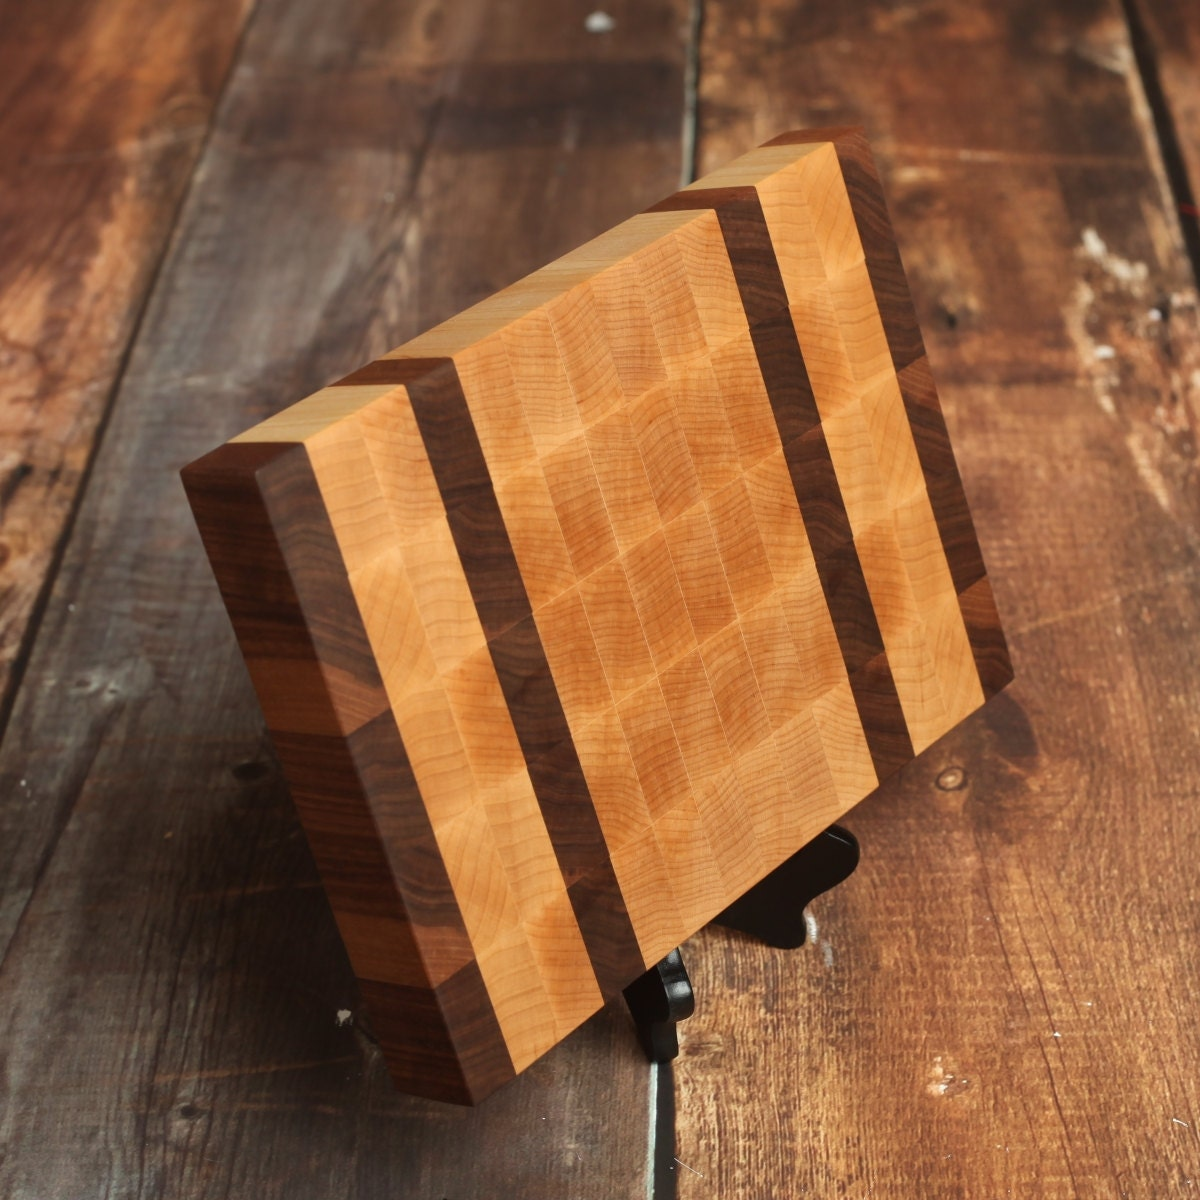 Unique Chopping Block End Grain Cutting Board With Strips Of